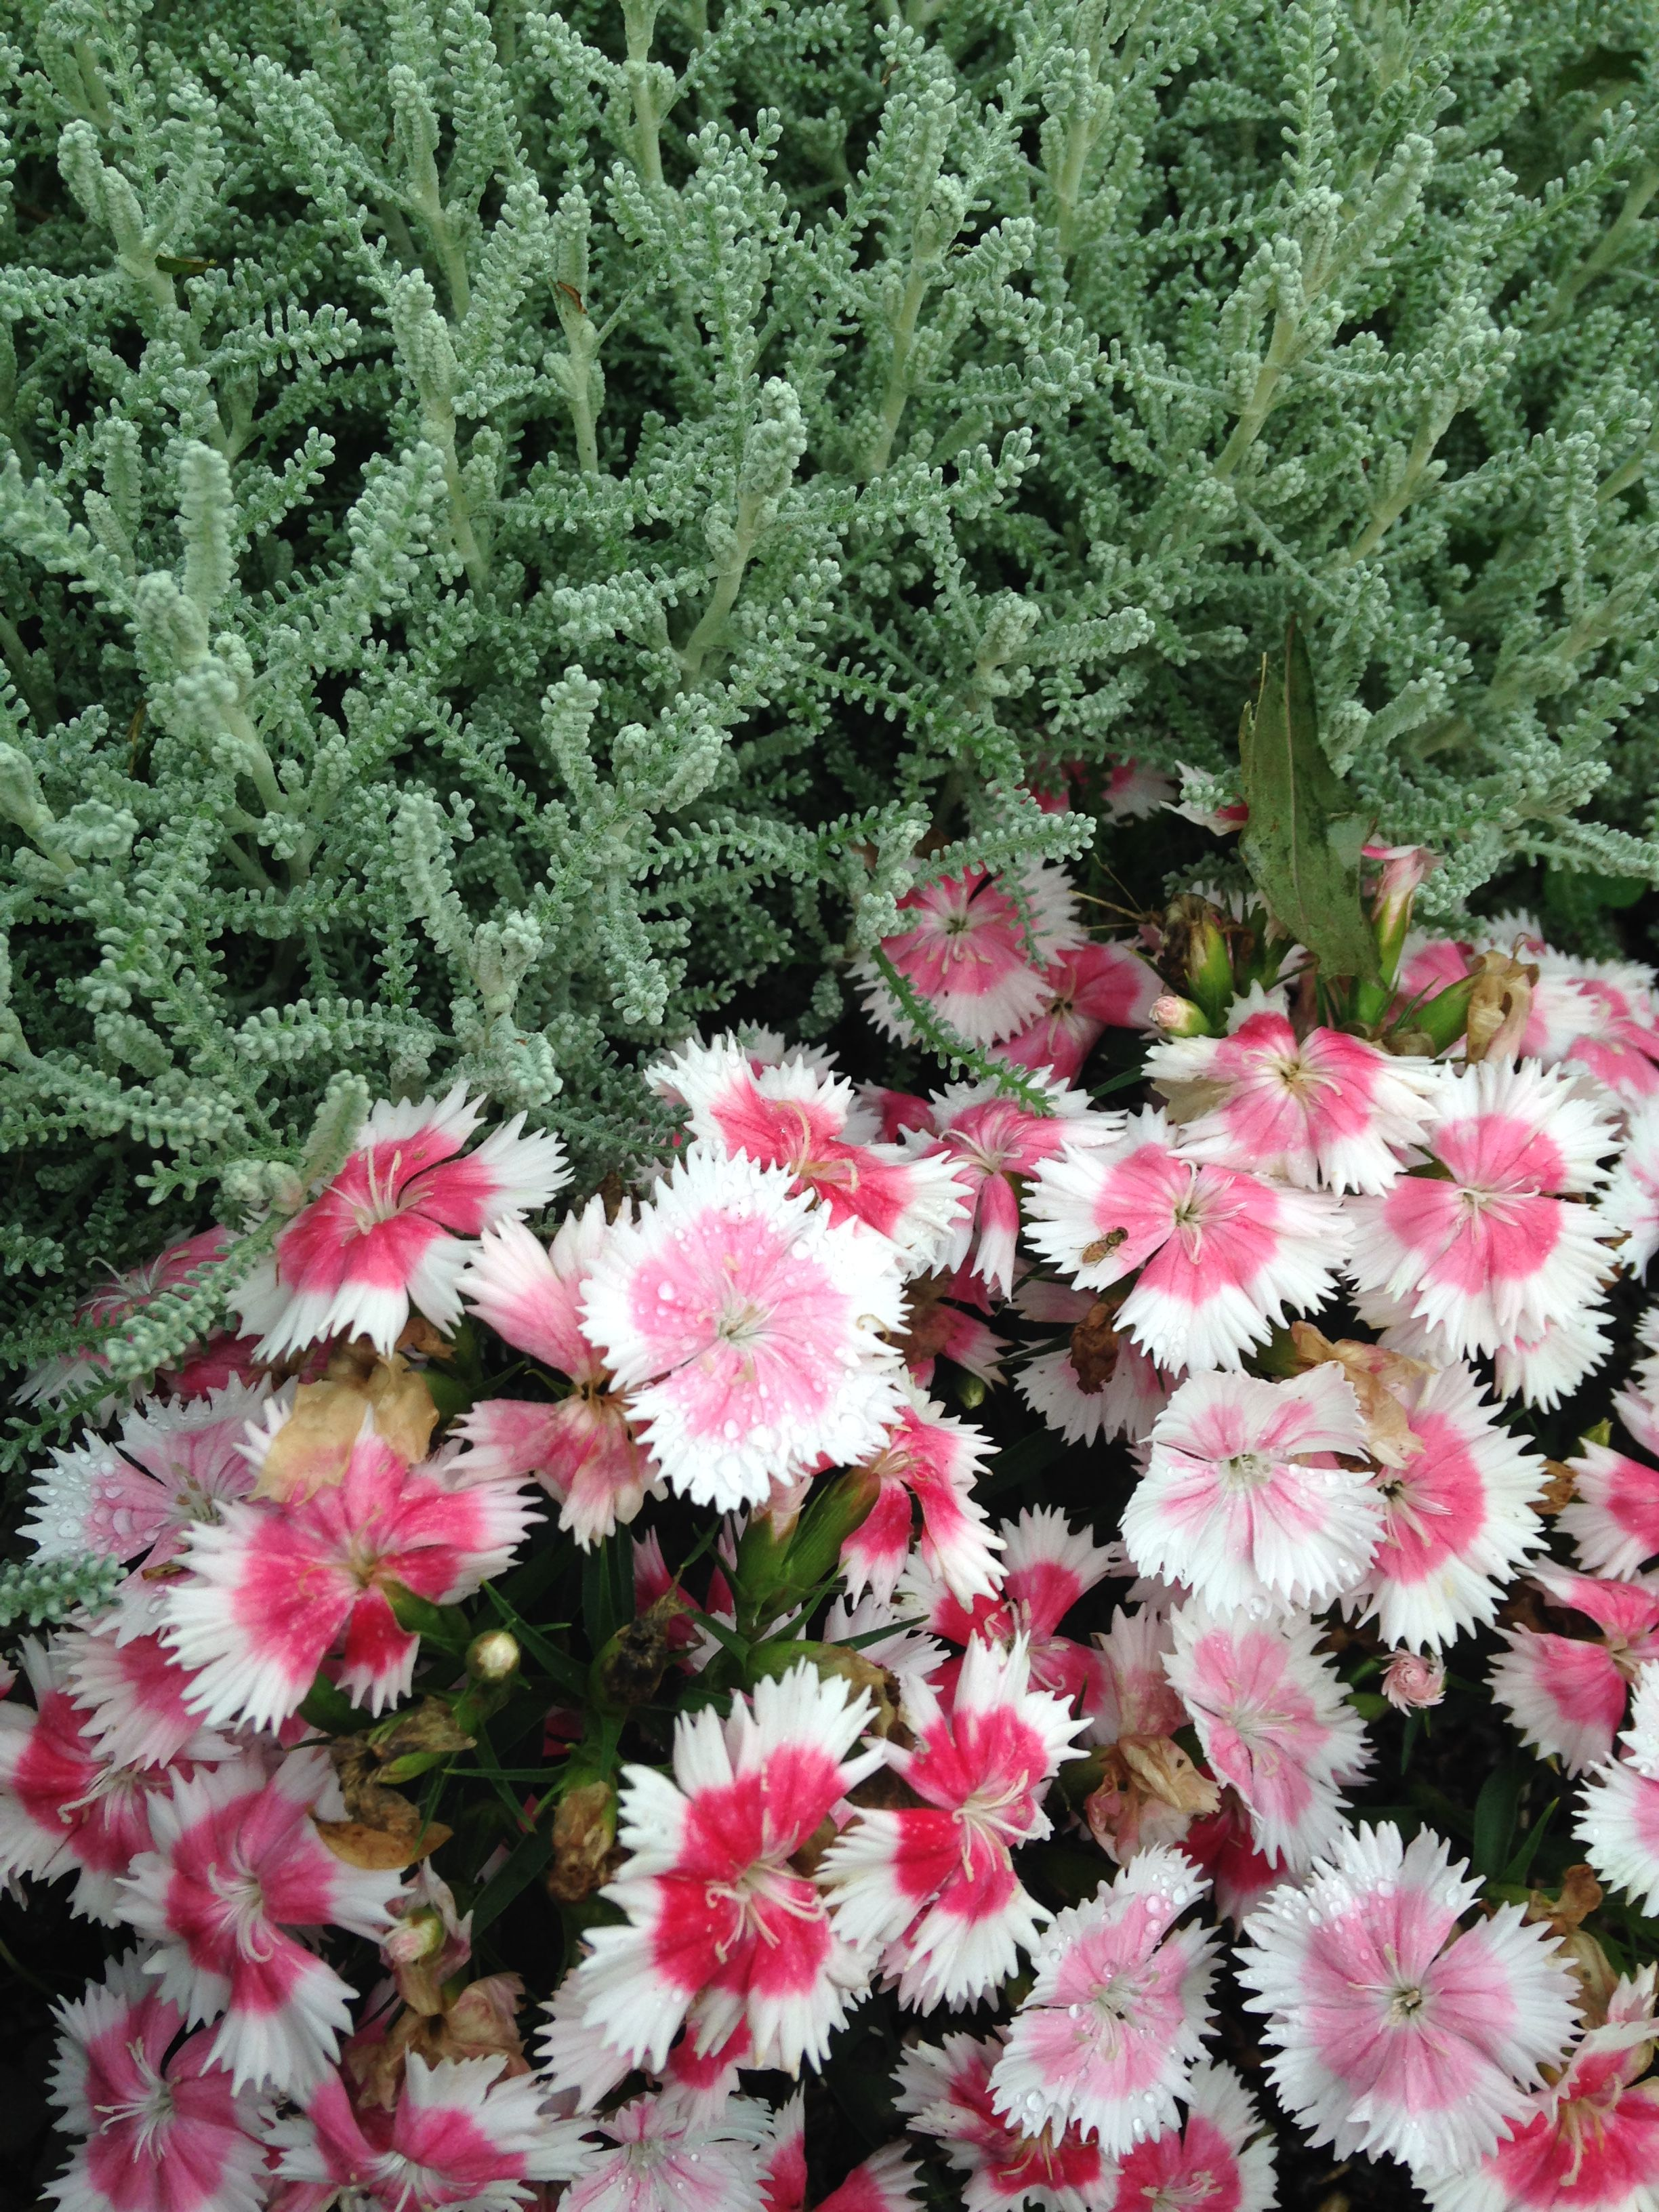 The Pink And White Flowers Are Called Dianthus And The Name Of The